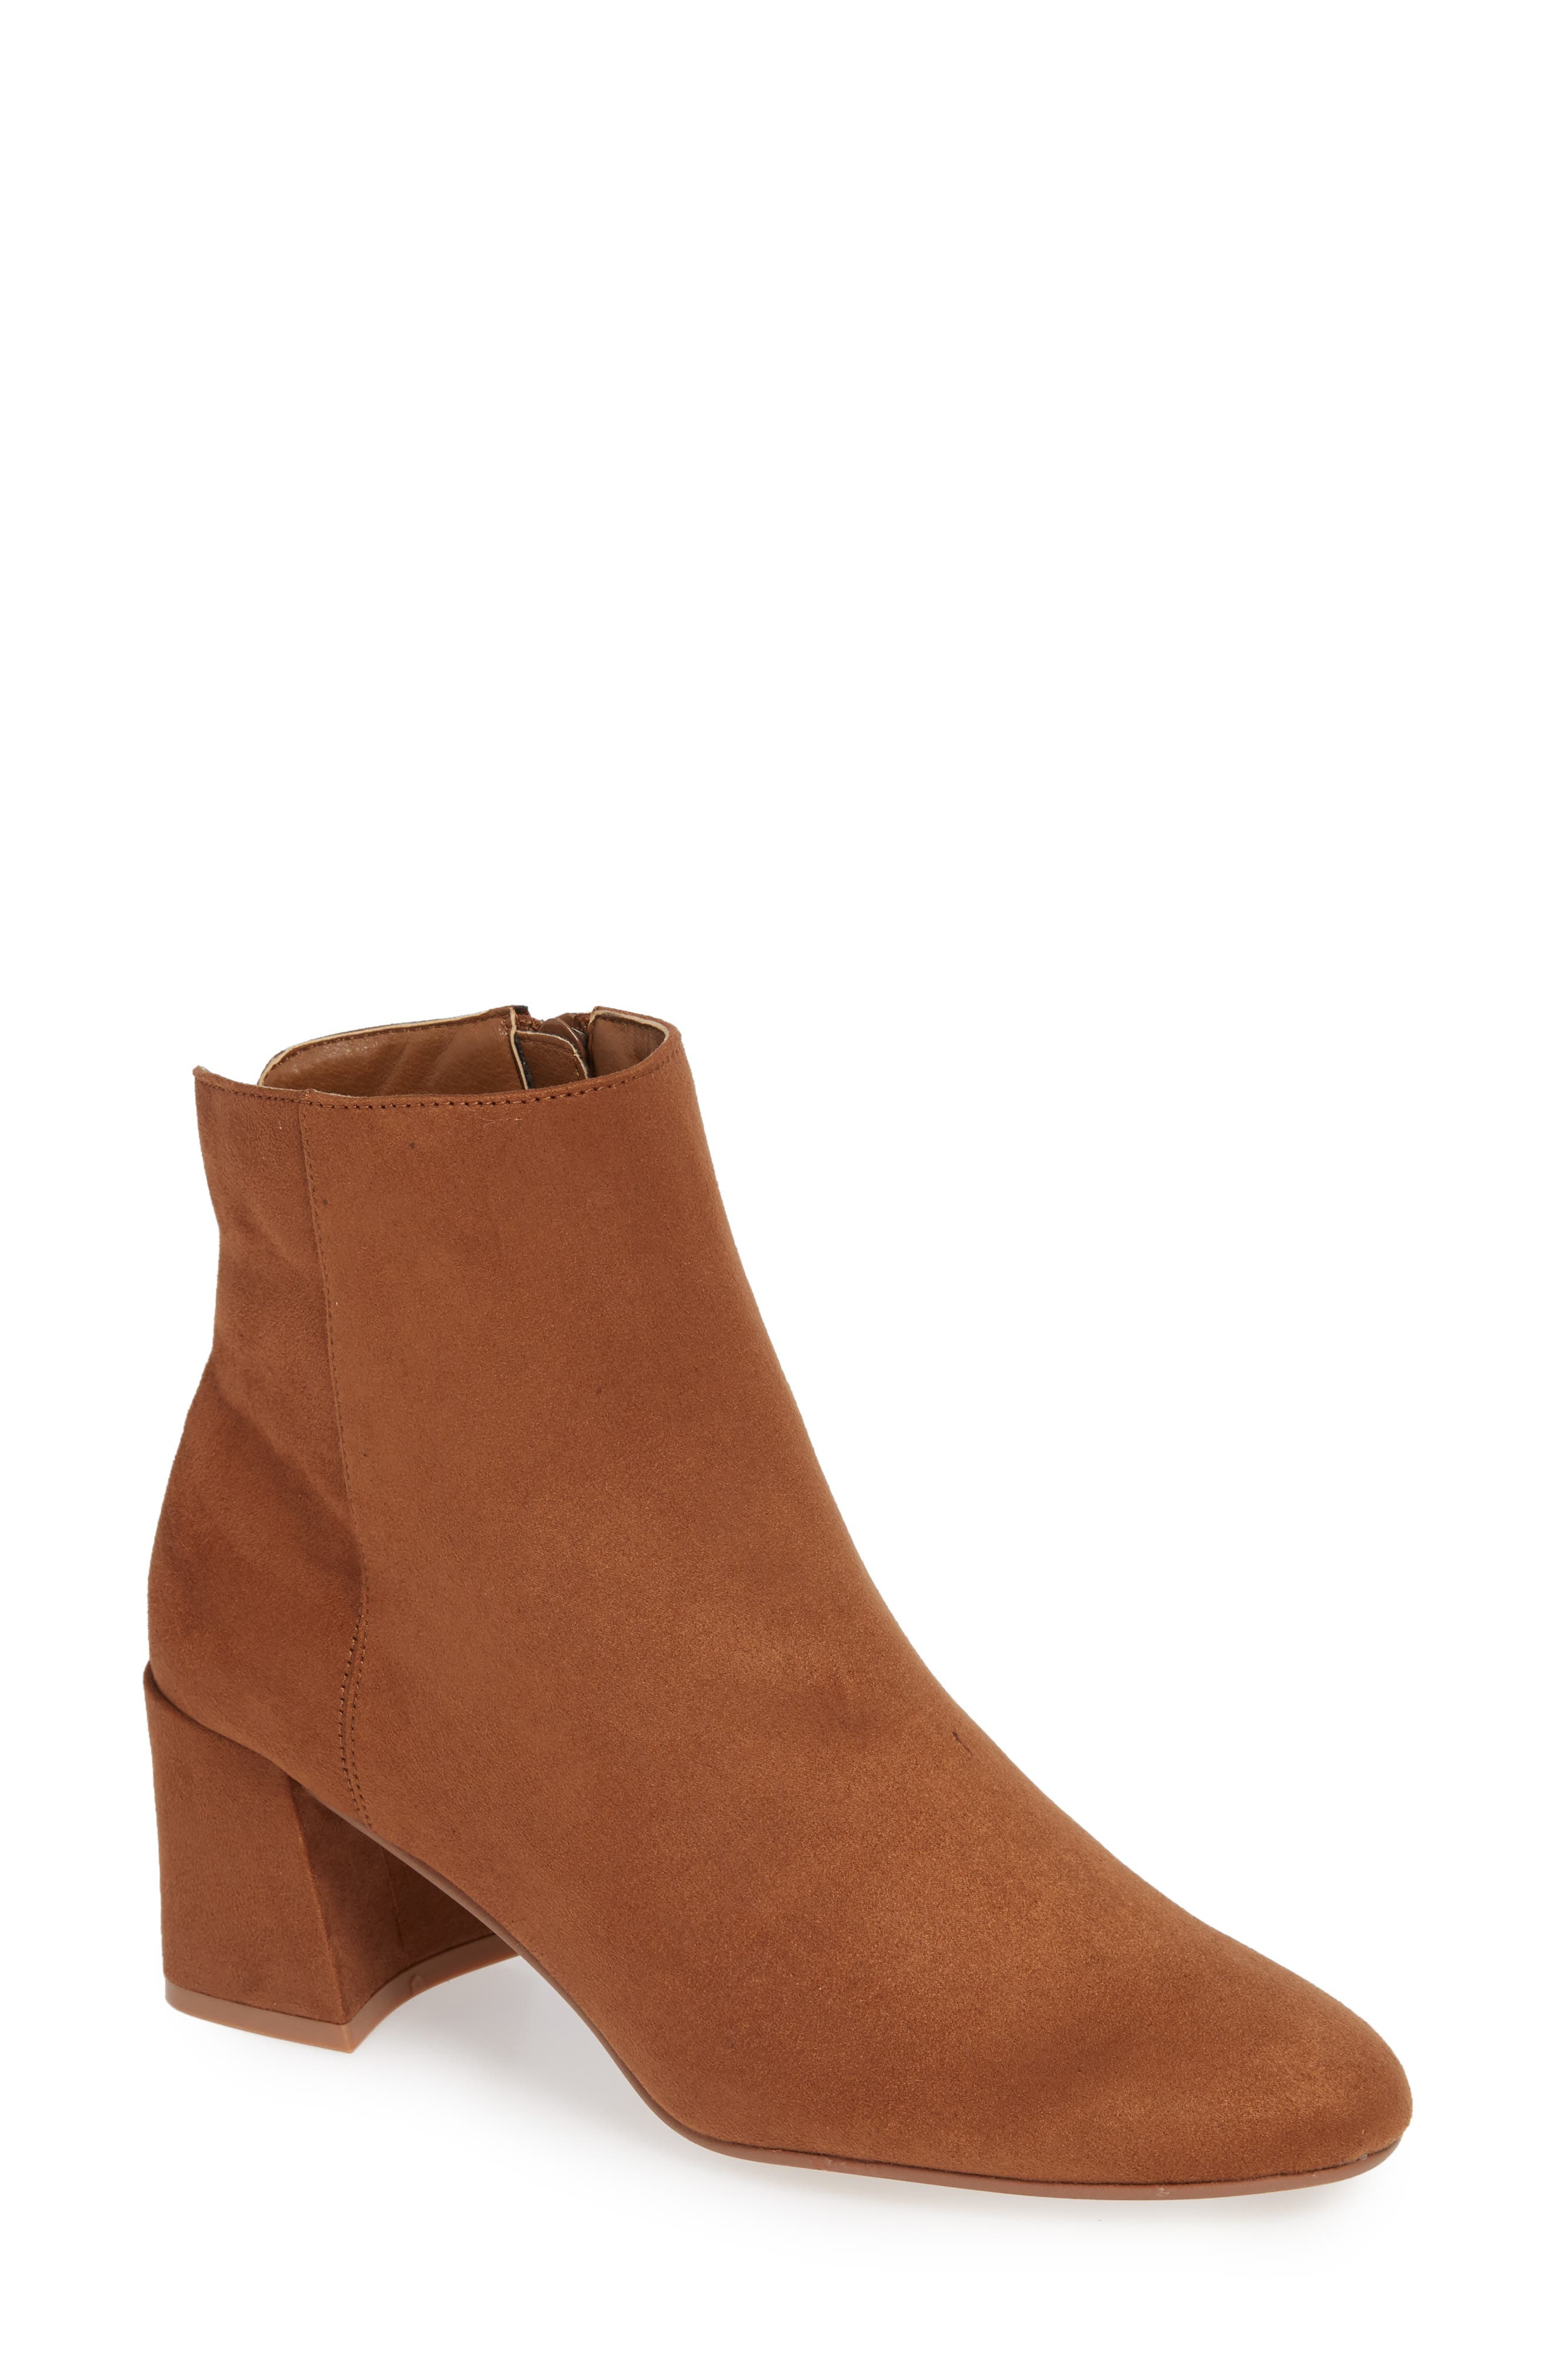 Chinese Laundry Daria Bootie- Brown